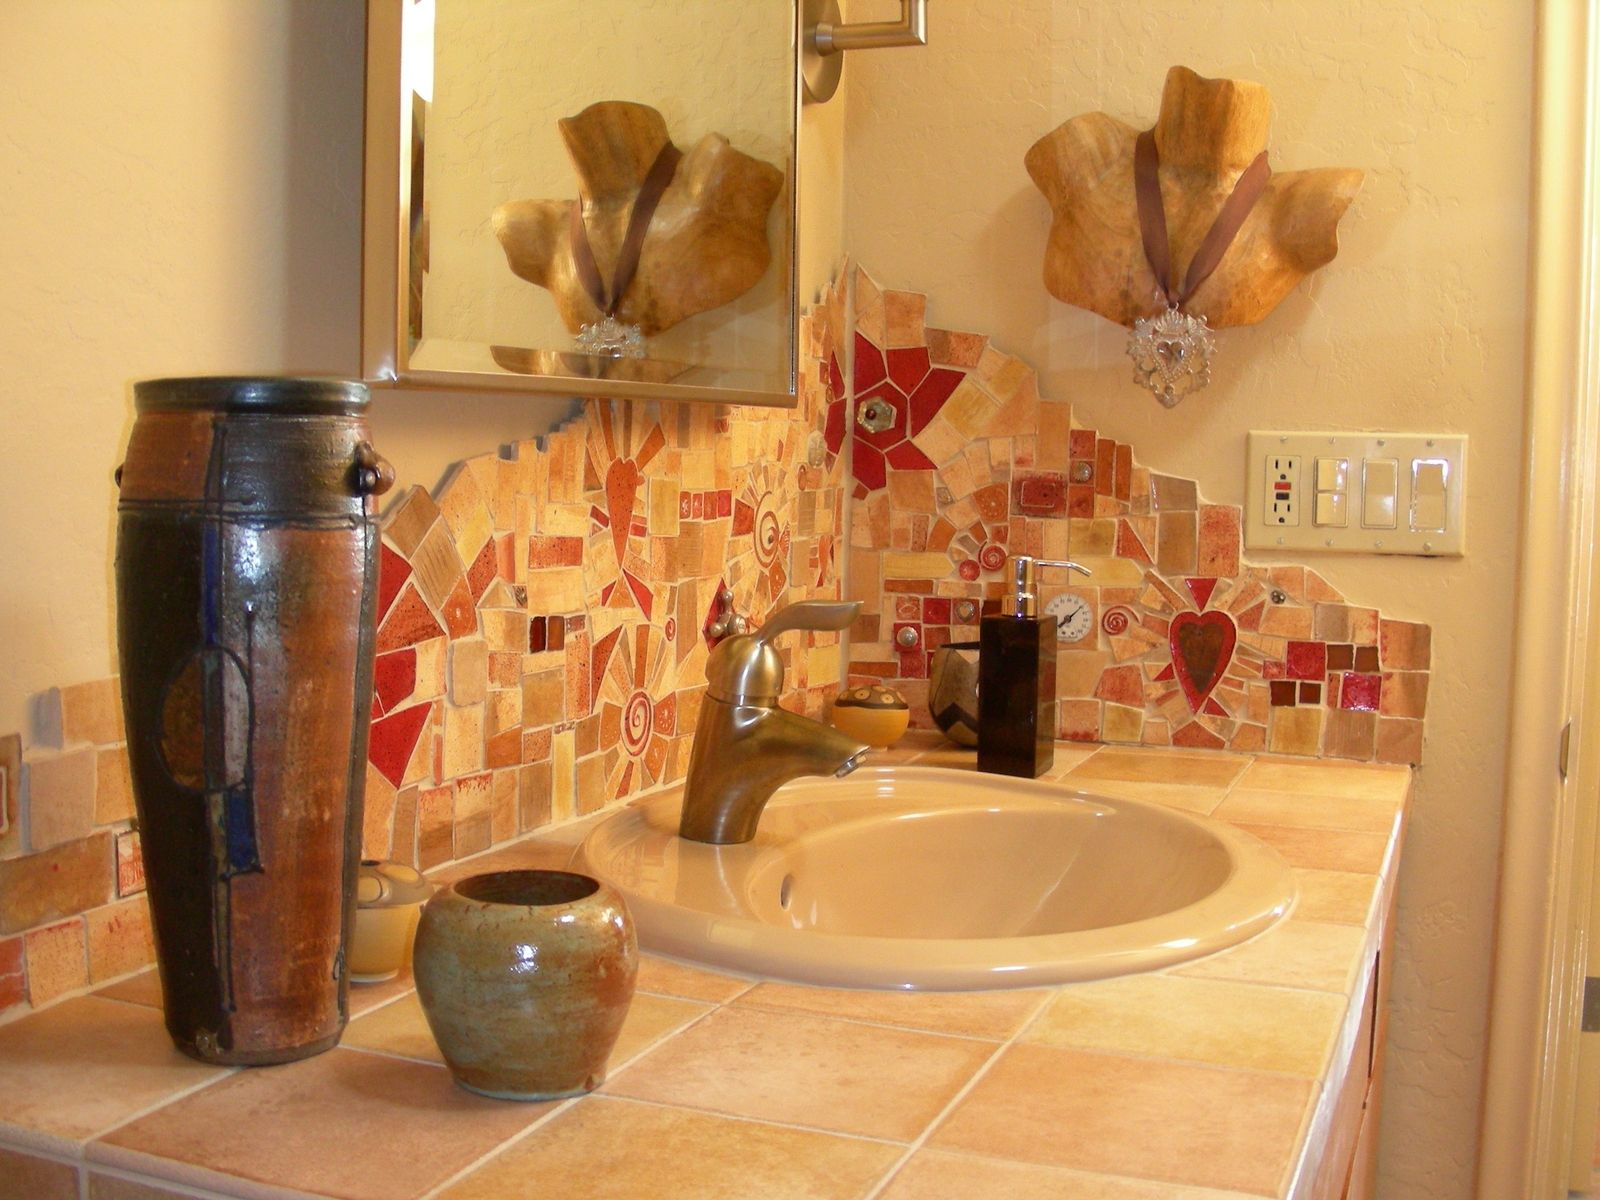 Custom made hand made tile mosaic bathroom backsplash by Bathroom designs with tile backsplashes